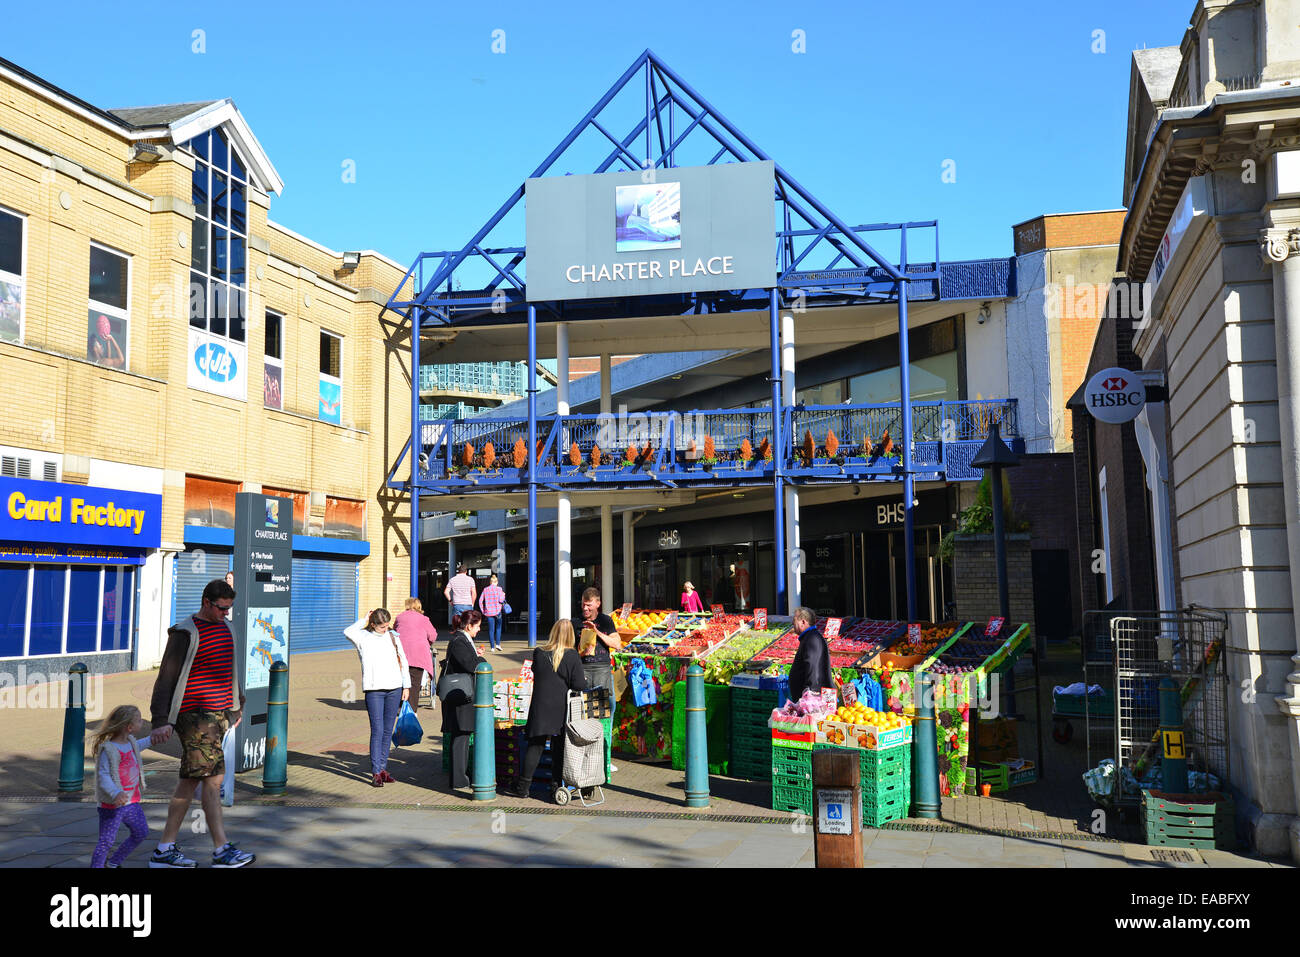 Entrance to Charter Place Shopping Centre, High Street, Watford, Hertfordshire, England, United Kingdom - Stock Image